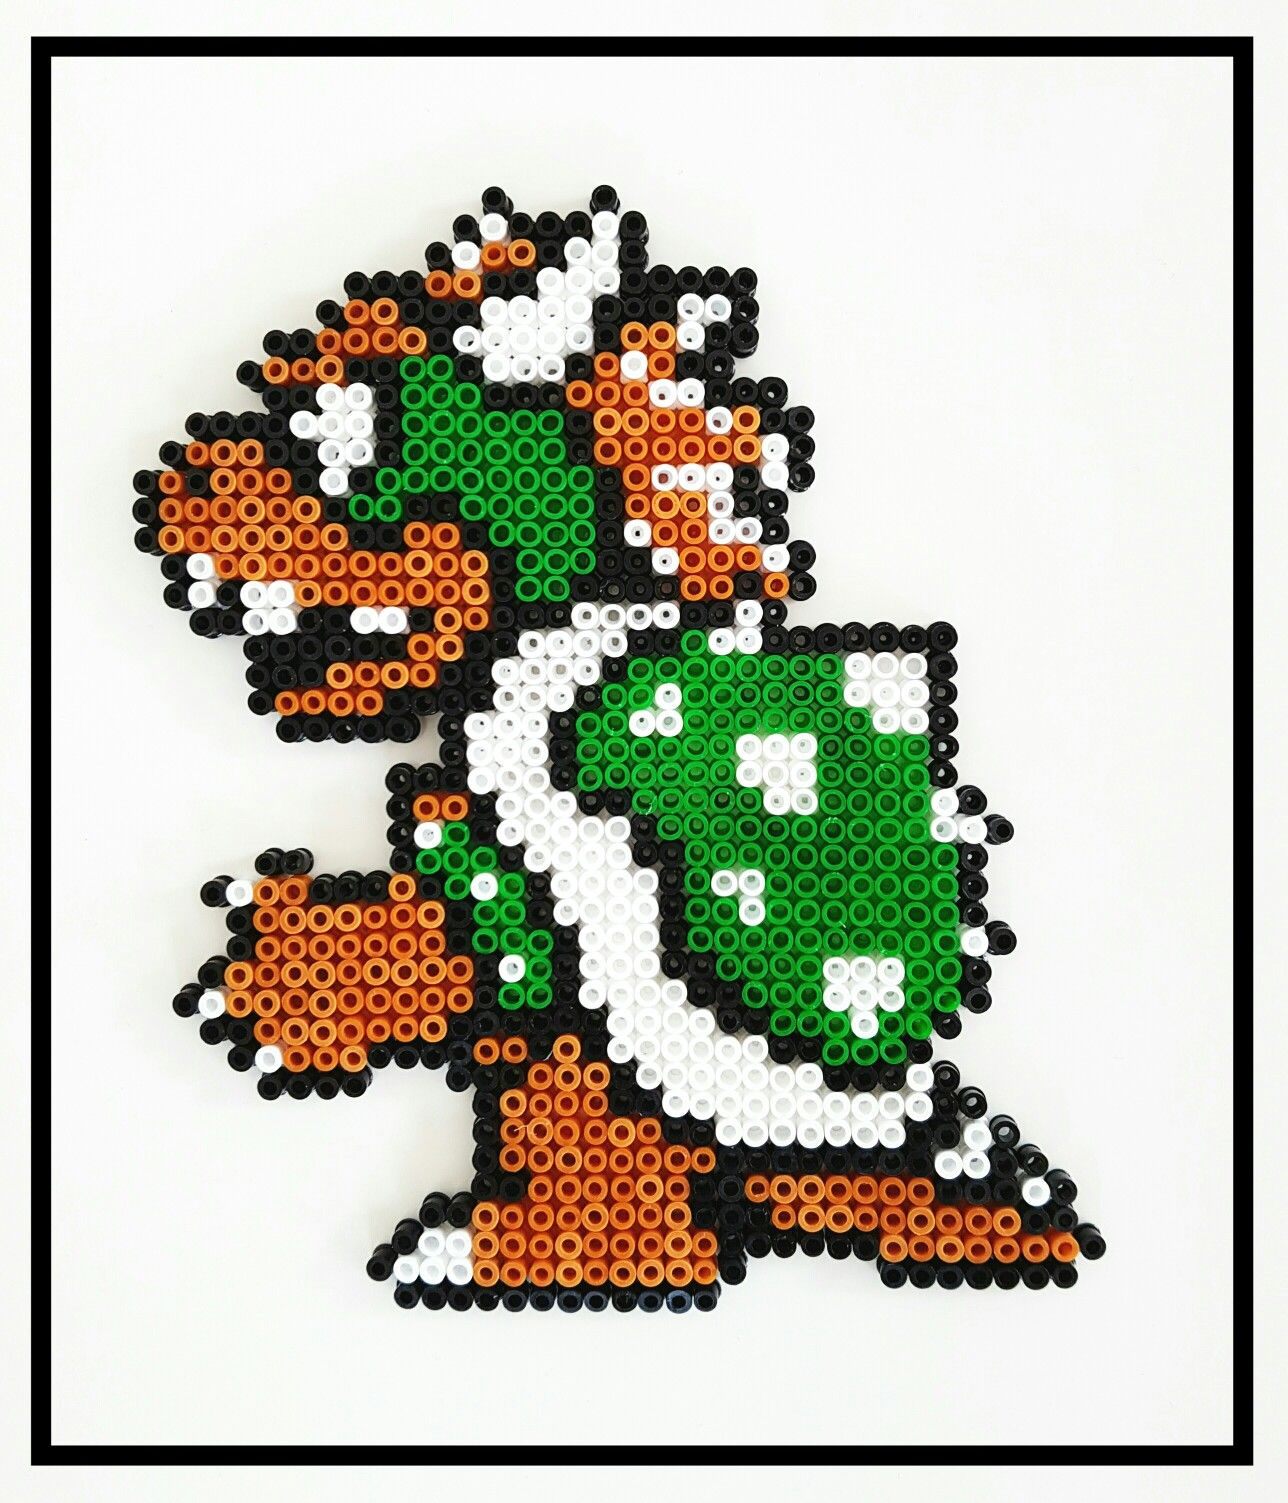 bowser hama beads b gelperlen hama beads bowser supermario basteln pinterest hama. Black Bedroom Furniture Sets. Home Design Ideas